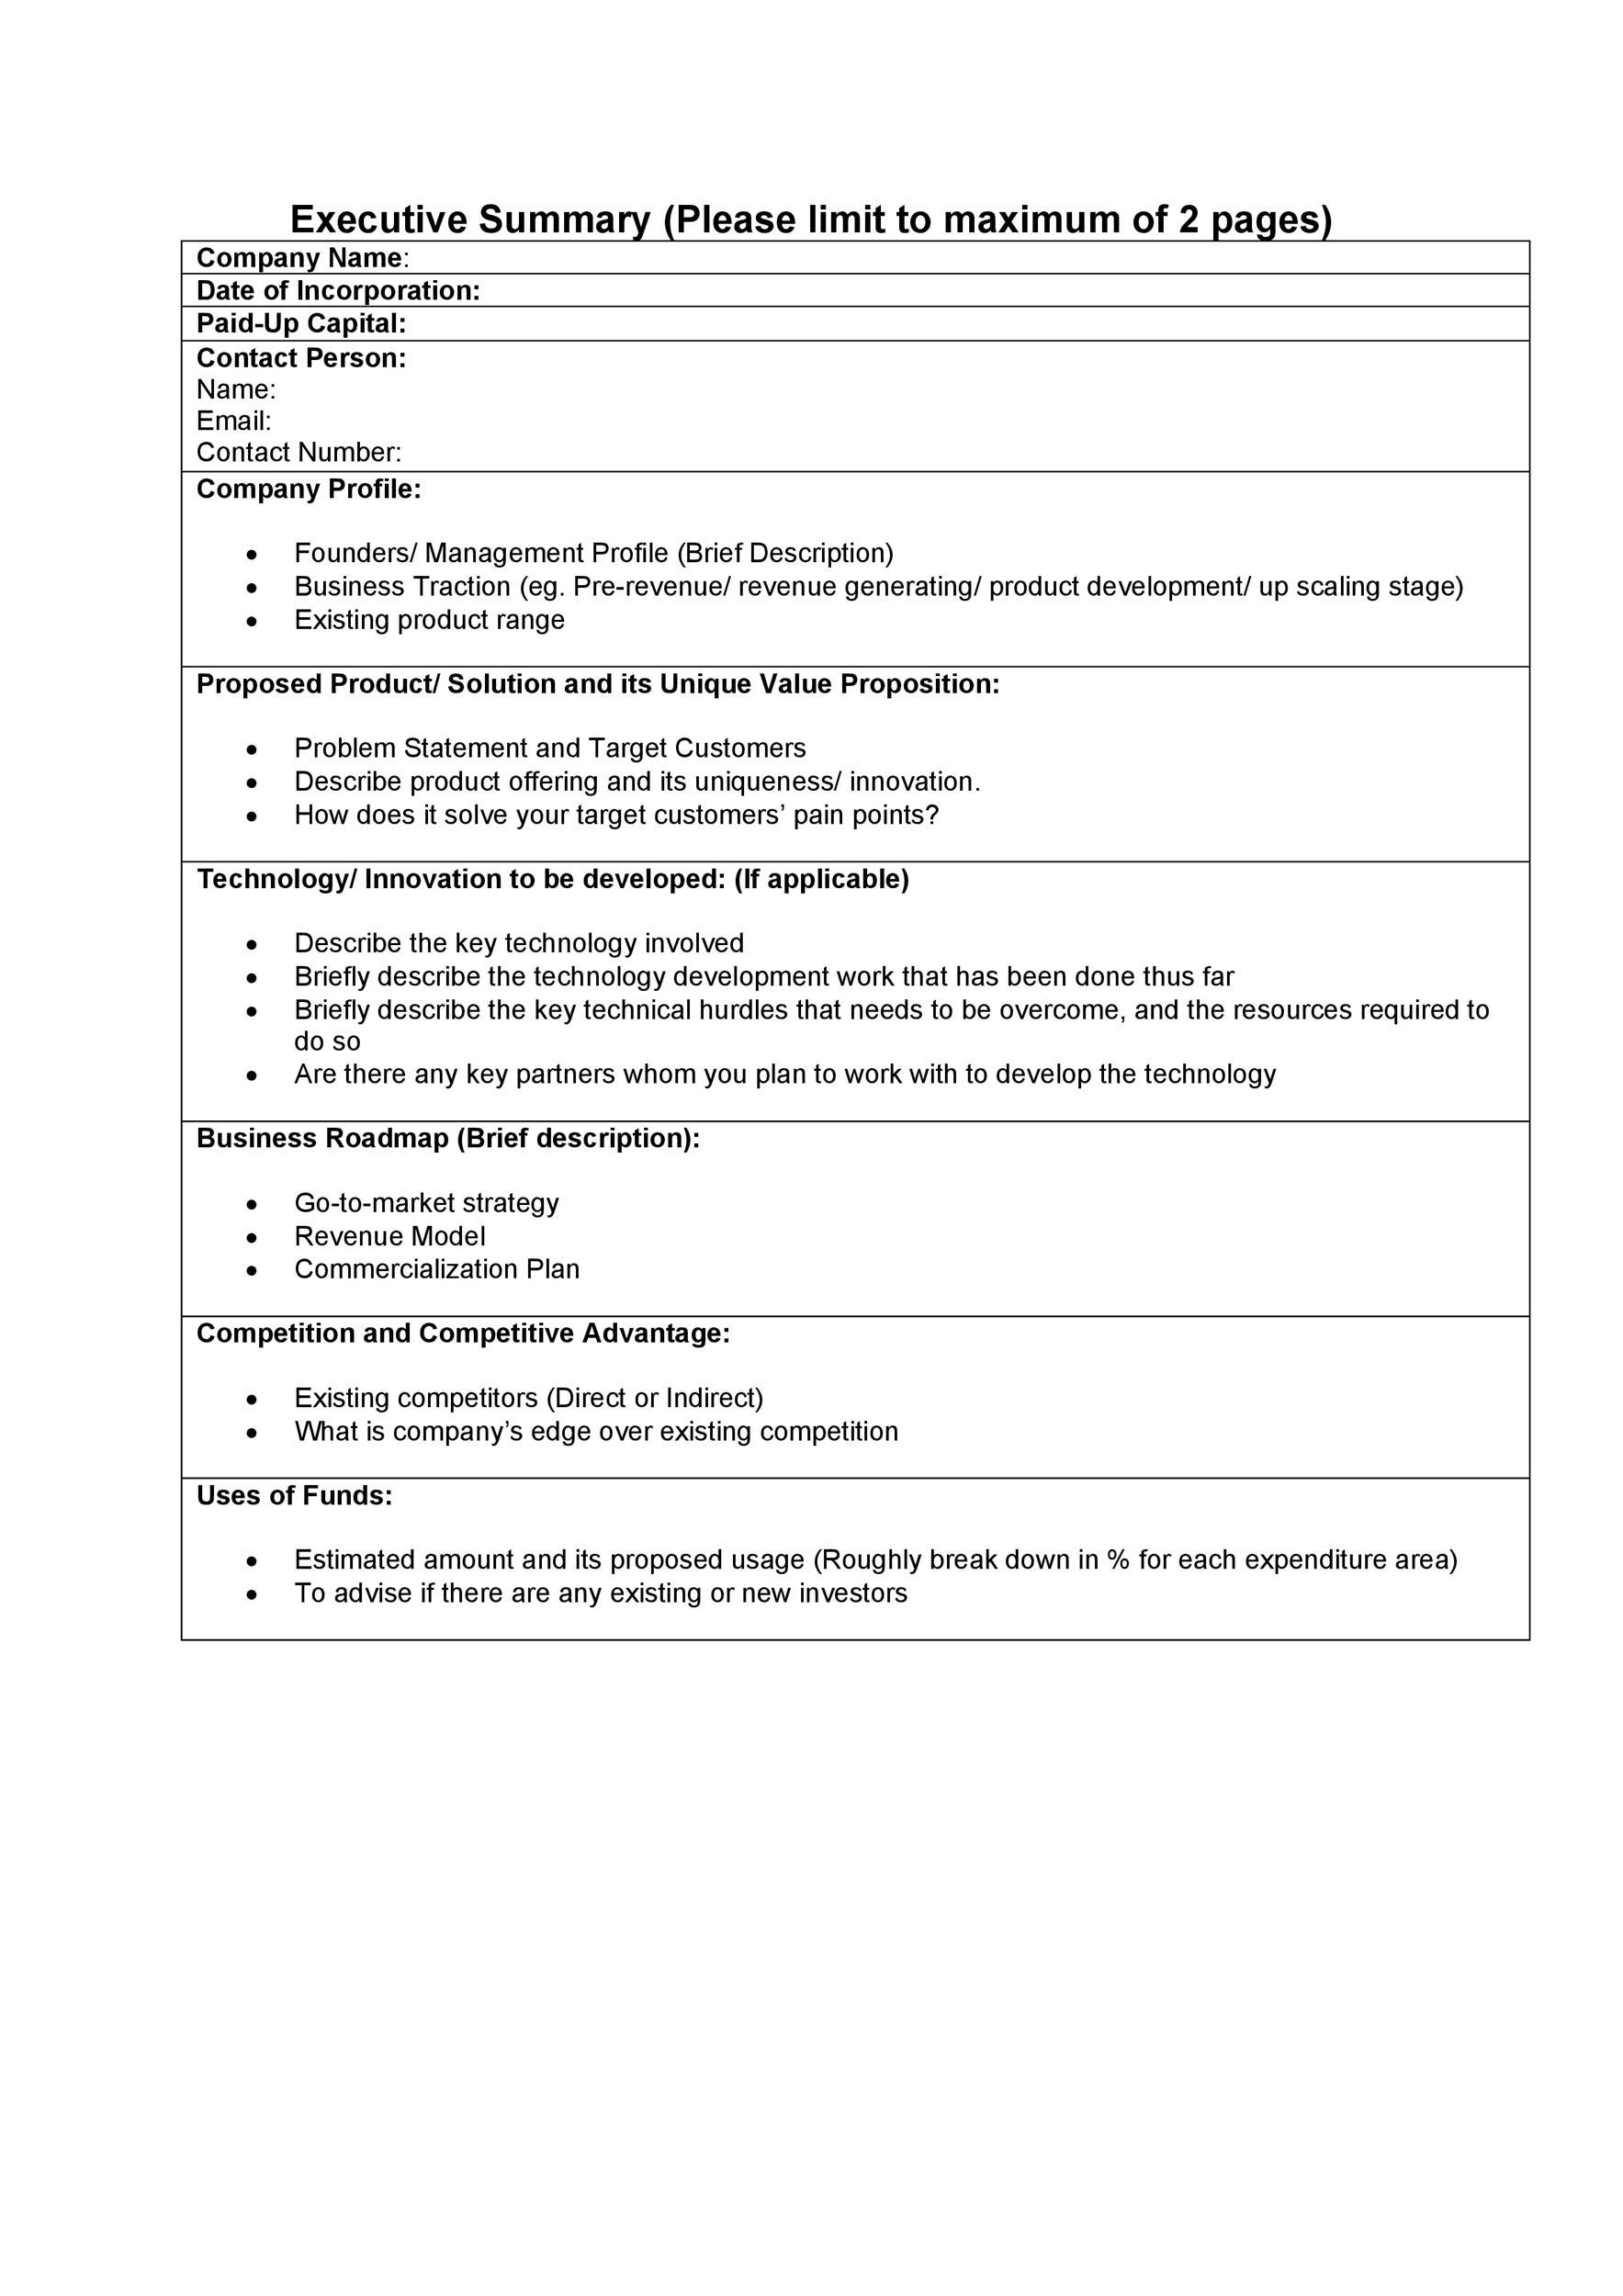 Executive Summary Template 30